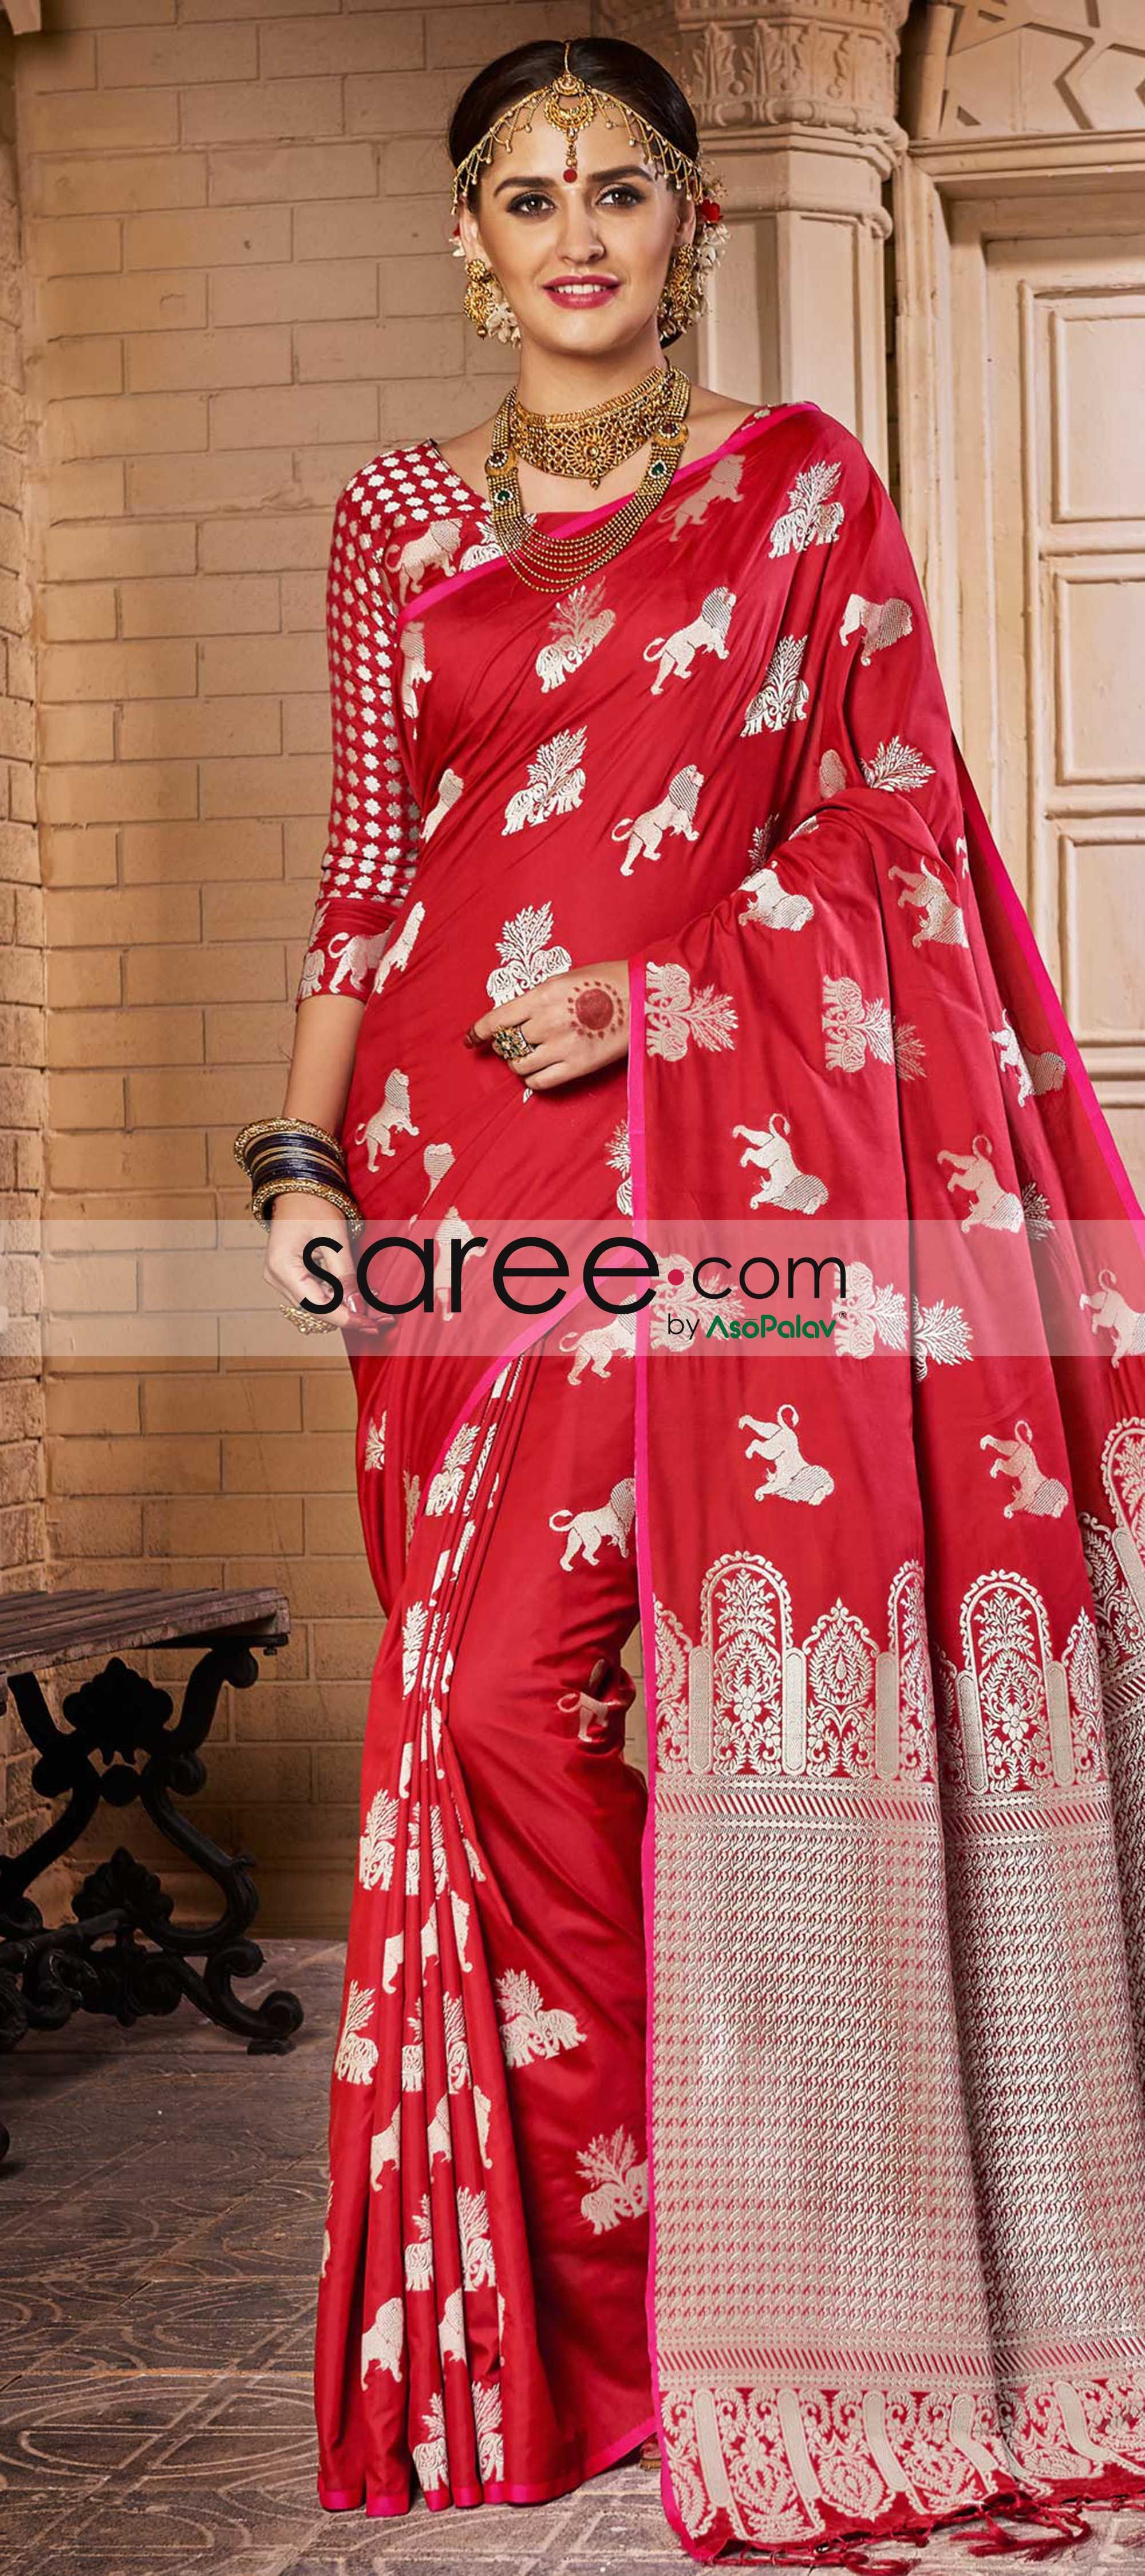 fa37eb5c9b4fca Red Silk Saree with Animal Motifs | sarees | Saree, Silk sarees ...